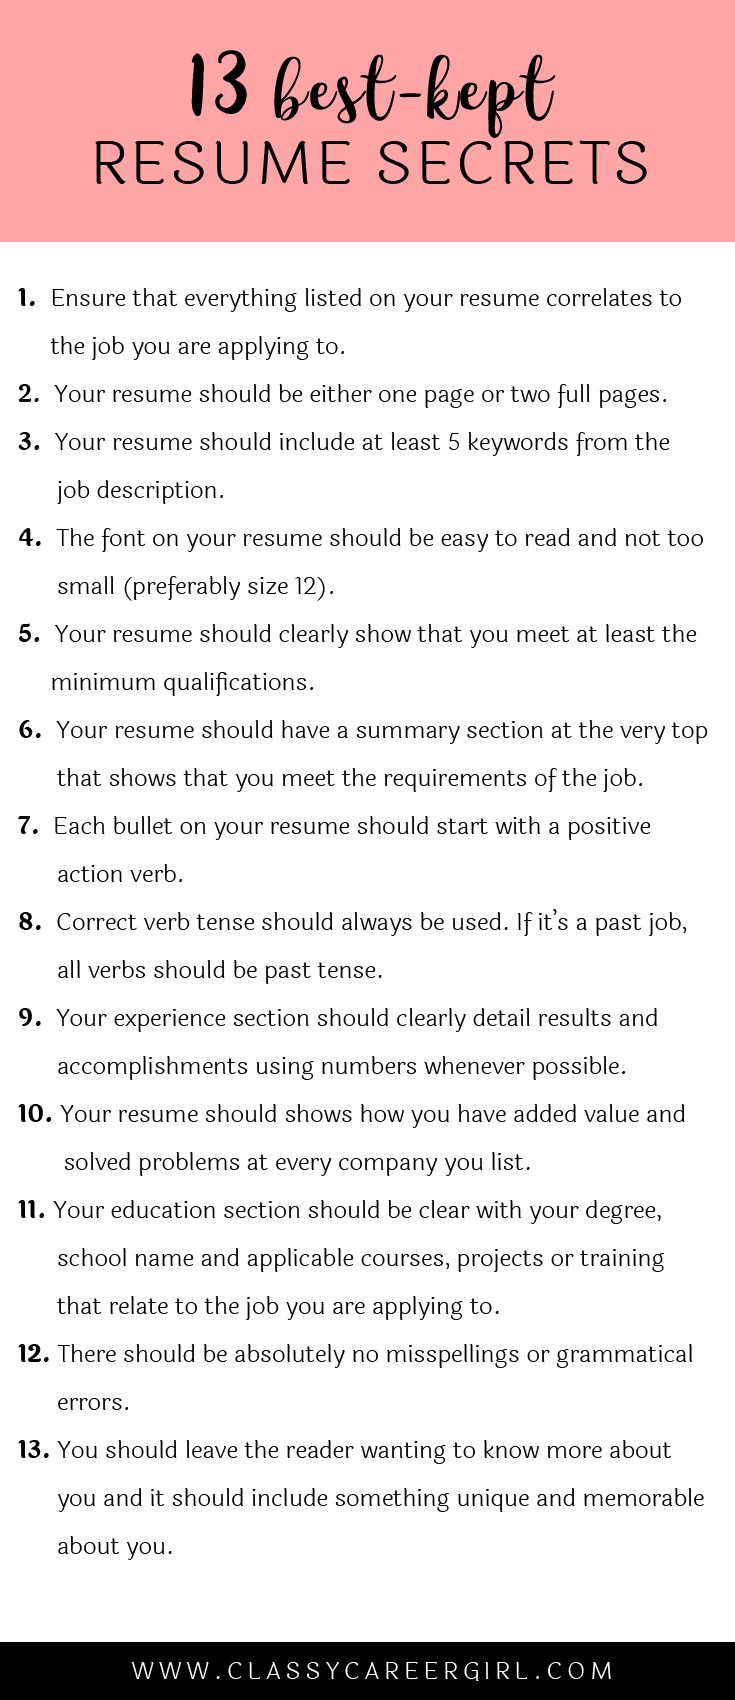 Opposenewapstandardsus  Wonderful  Ideas About Resume On Pinterest  Cv Format Resume Cv And  With Fair Some Hiring Managers Will Toss Your Resume Out If You Dont Know These  With Agreeable Entry Level Electrical Engineering Resume Also Computer Repair Resume In Addition Management Objective Resume And Put High School On Resume As Well As Contract Manager Resume Additionally Railroad Resume From Pinterestcom With Opposenewapstandardsus  Fair  Ideas About Resume On Pinterest  Cv Format Resume Cv And  With Agreeable Some Hiring Managers Will Toss Your Resume Out If You Dont Know These  And Wonderful Entry Level Electrical Engineering Resume Also Computer Repair Resume In Addition Management Objective Resume From Pinterestcom